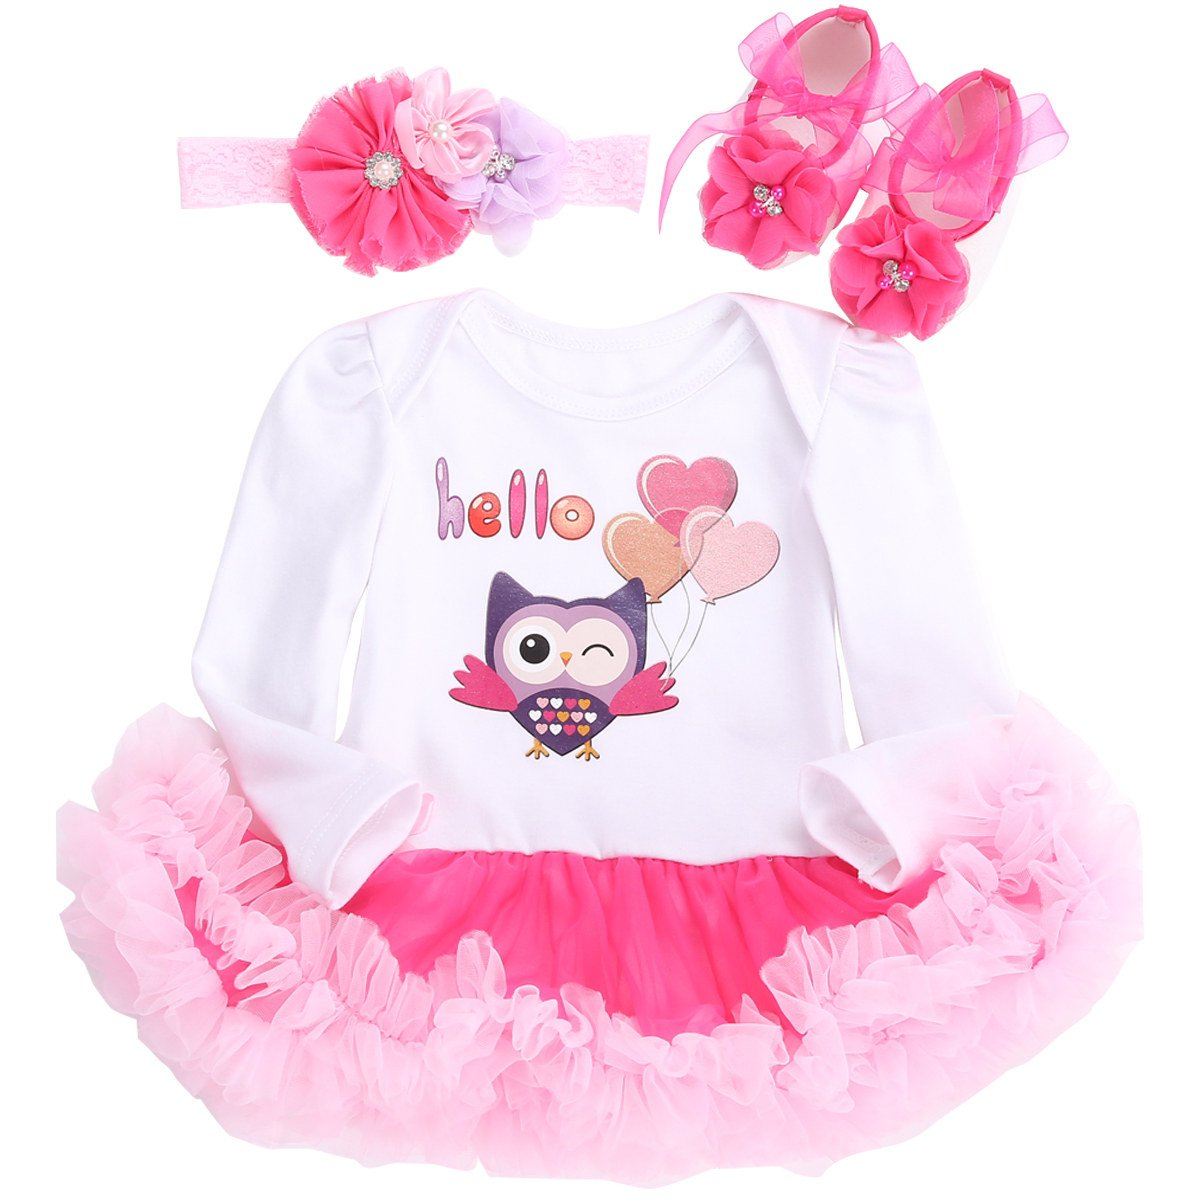 Fubin Wedding Tween Clothes For Girls Onesie Clothes For Birthday Fall Baby Girl Clothes OWL Long Sleeve 7-9 Months/26-29''/18-21lb